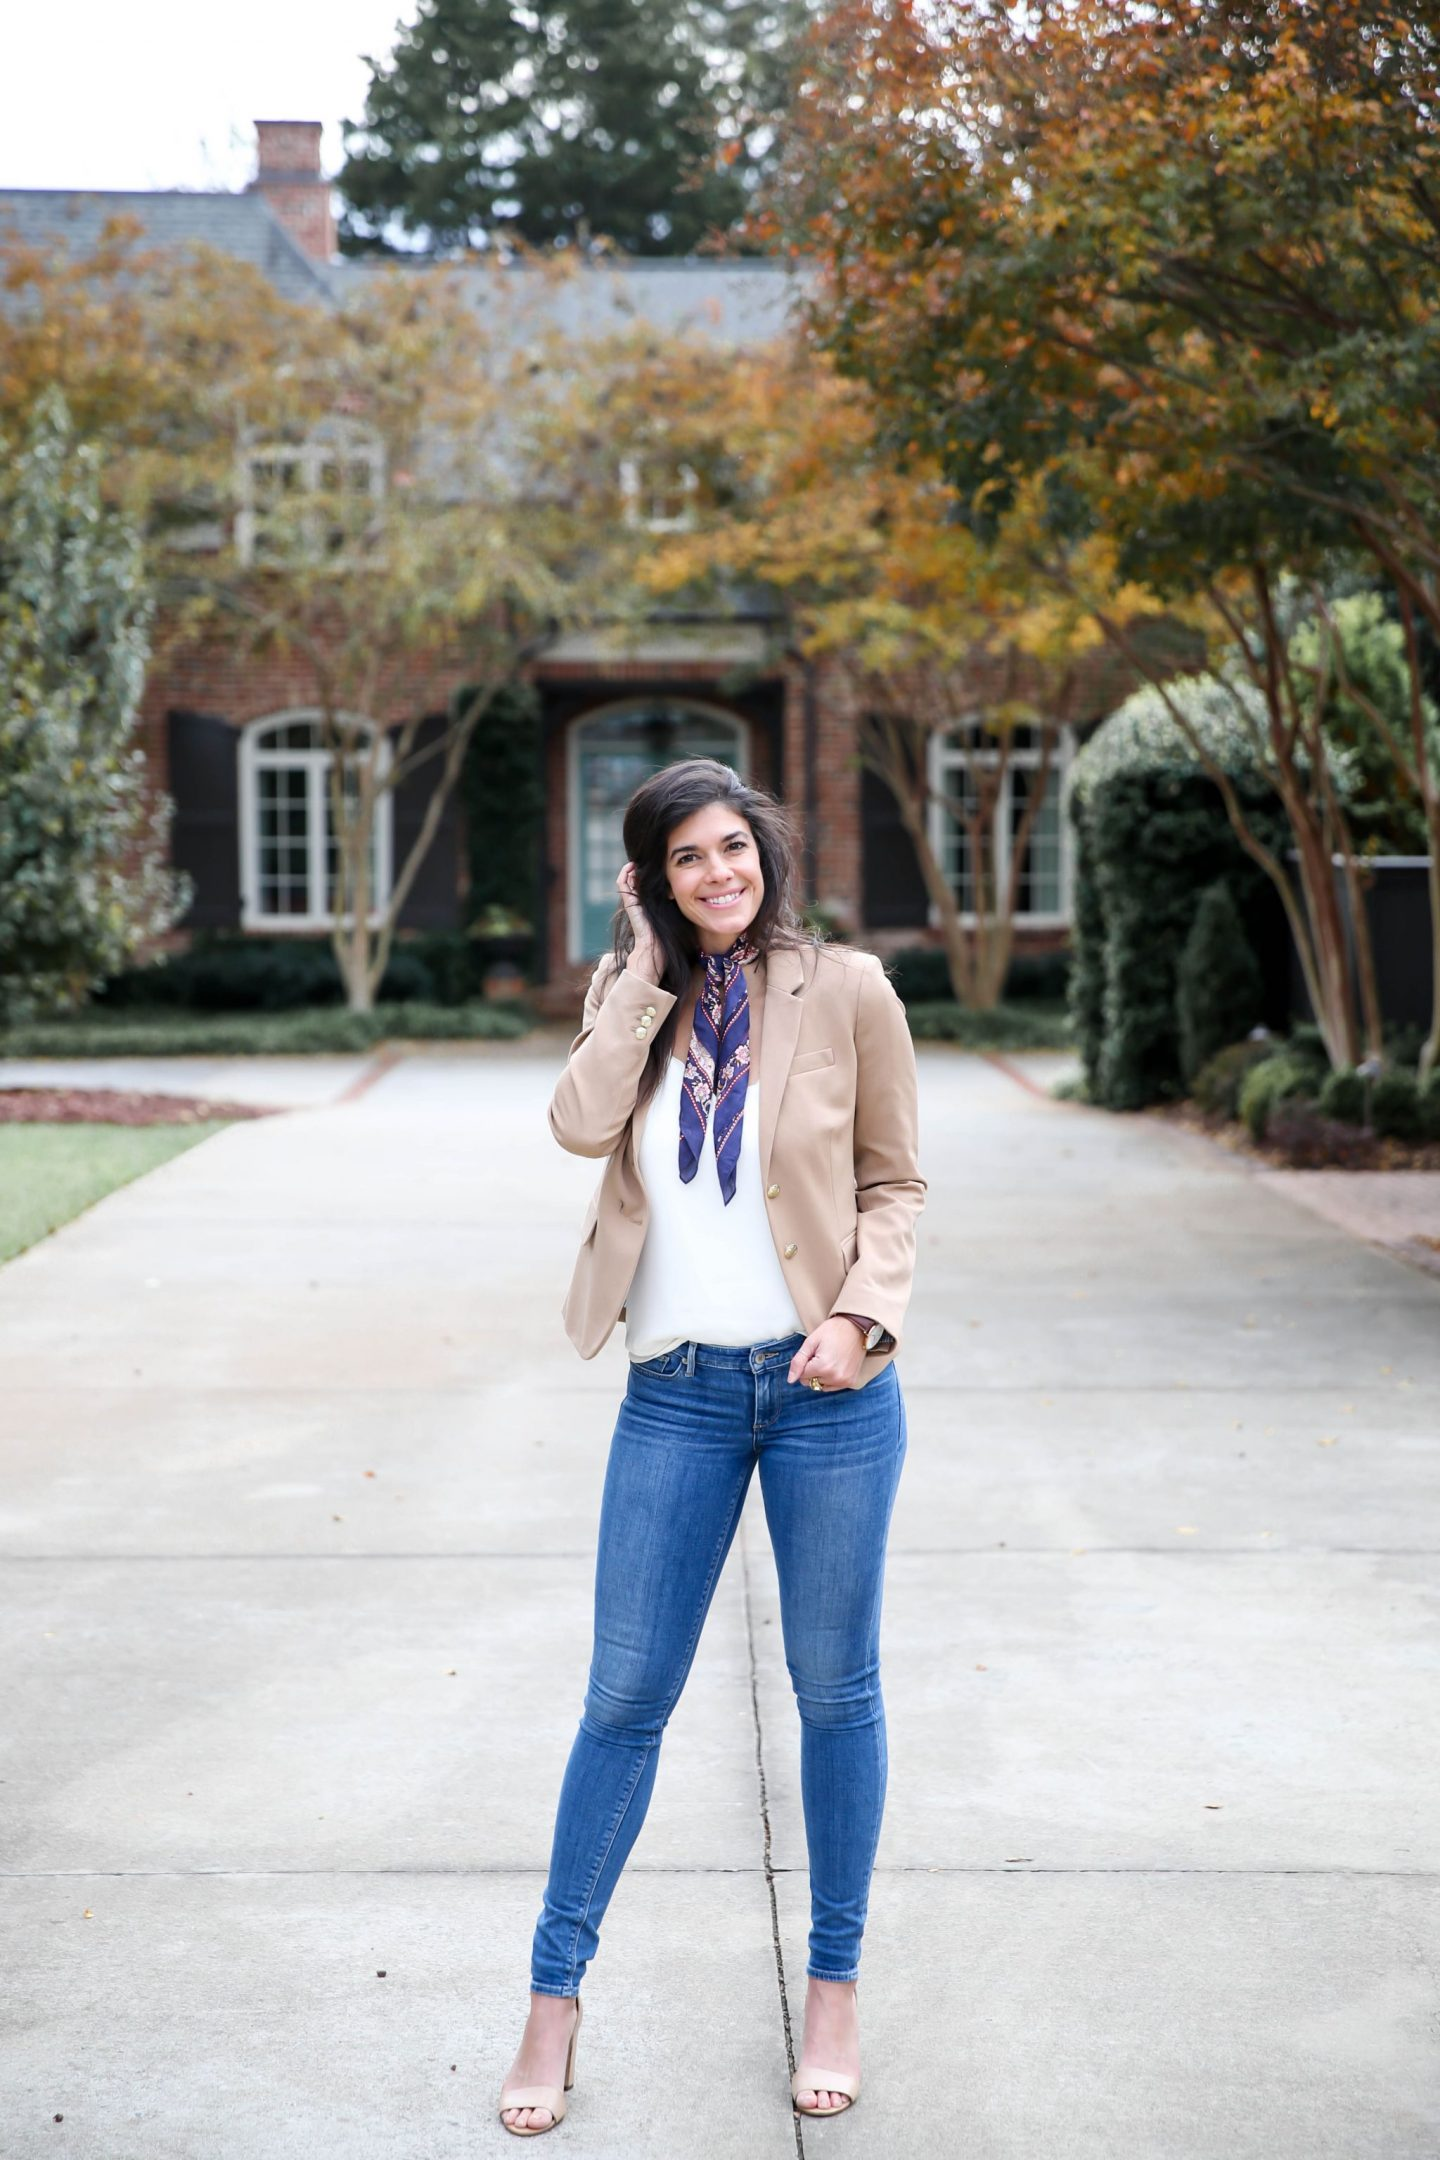 skinny jeans + blazer - business casual outfit inspiration - Lauren Schwaiger Style Blog